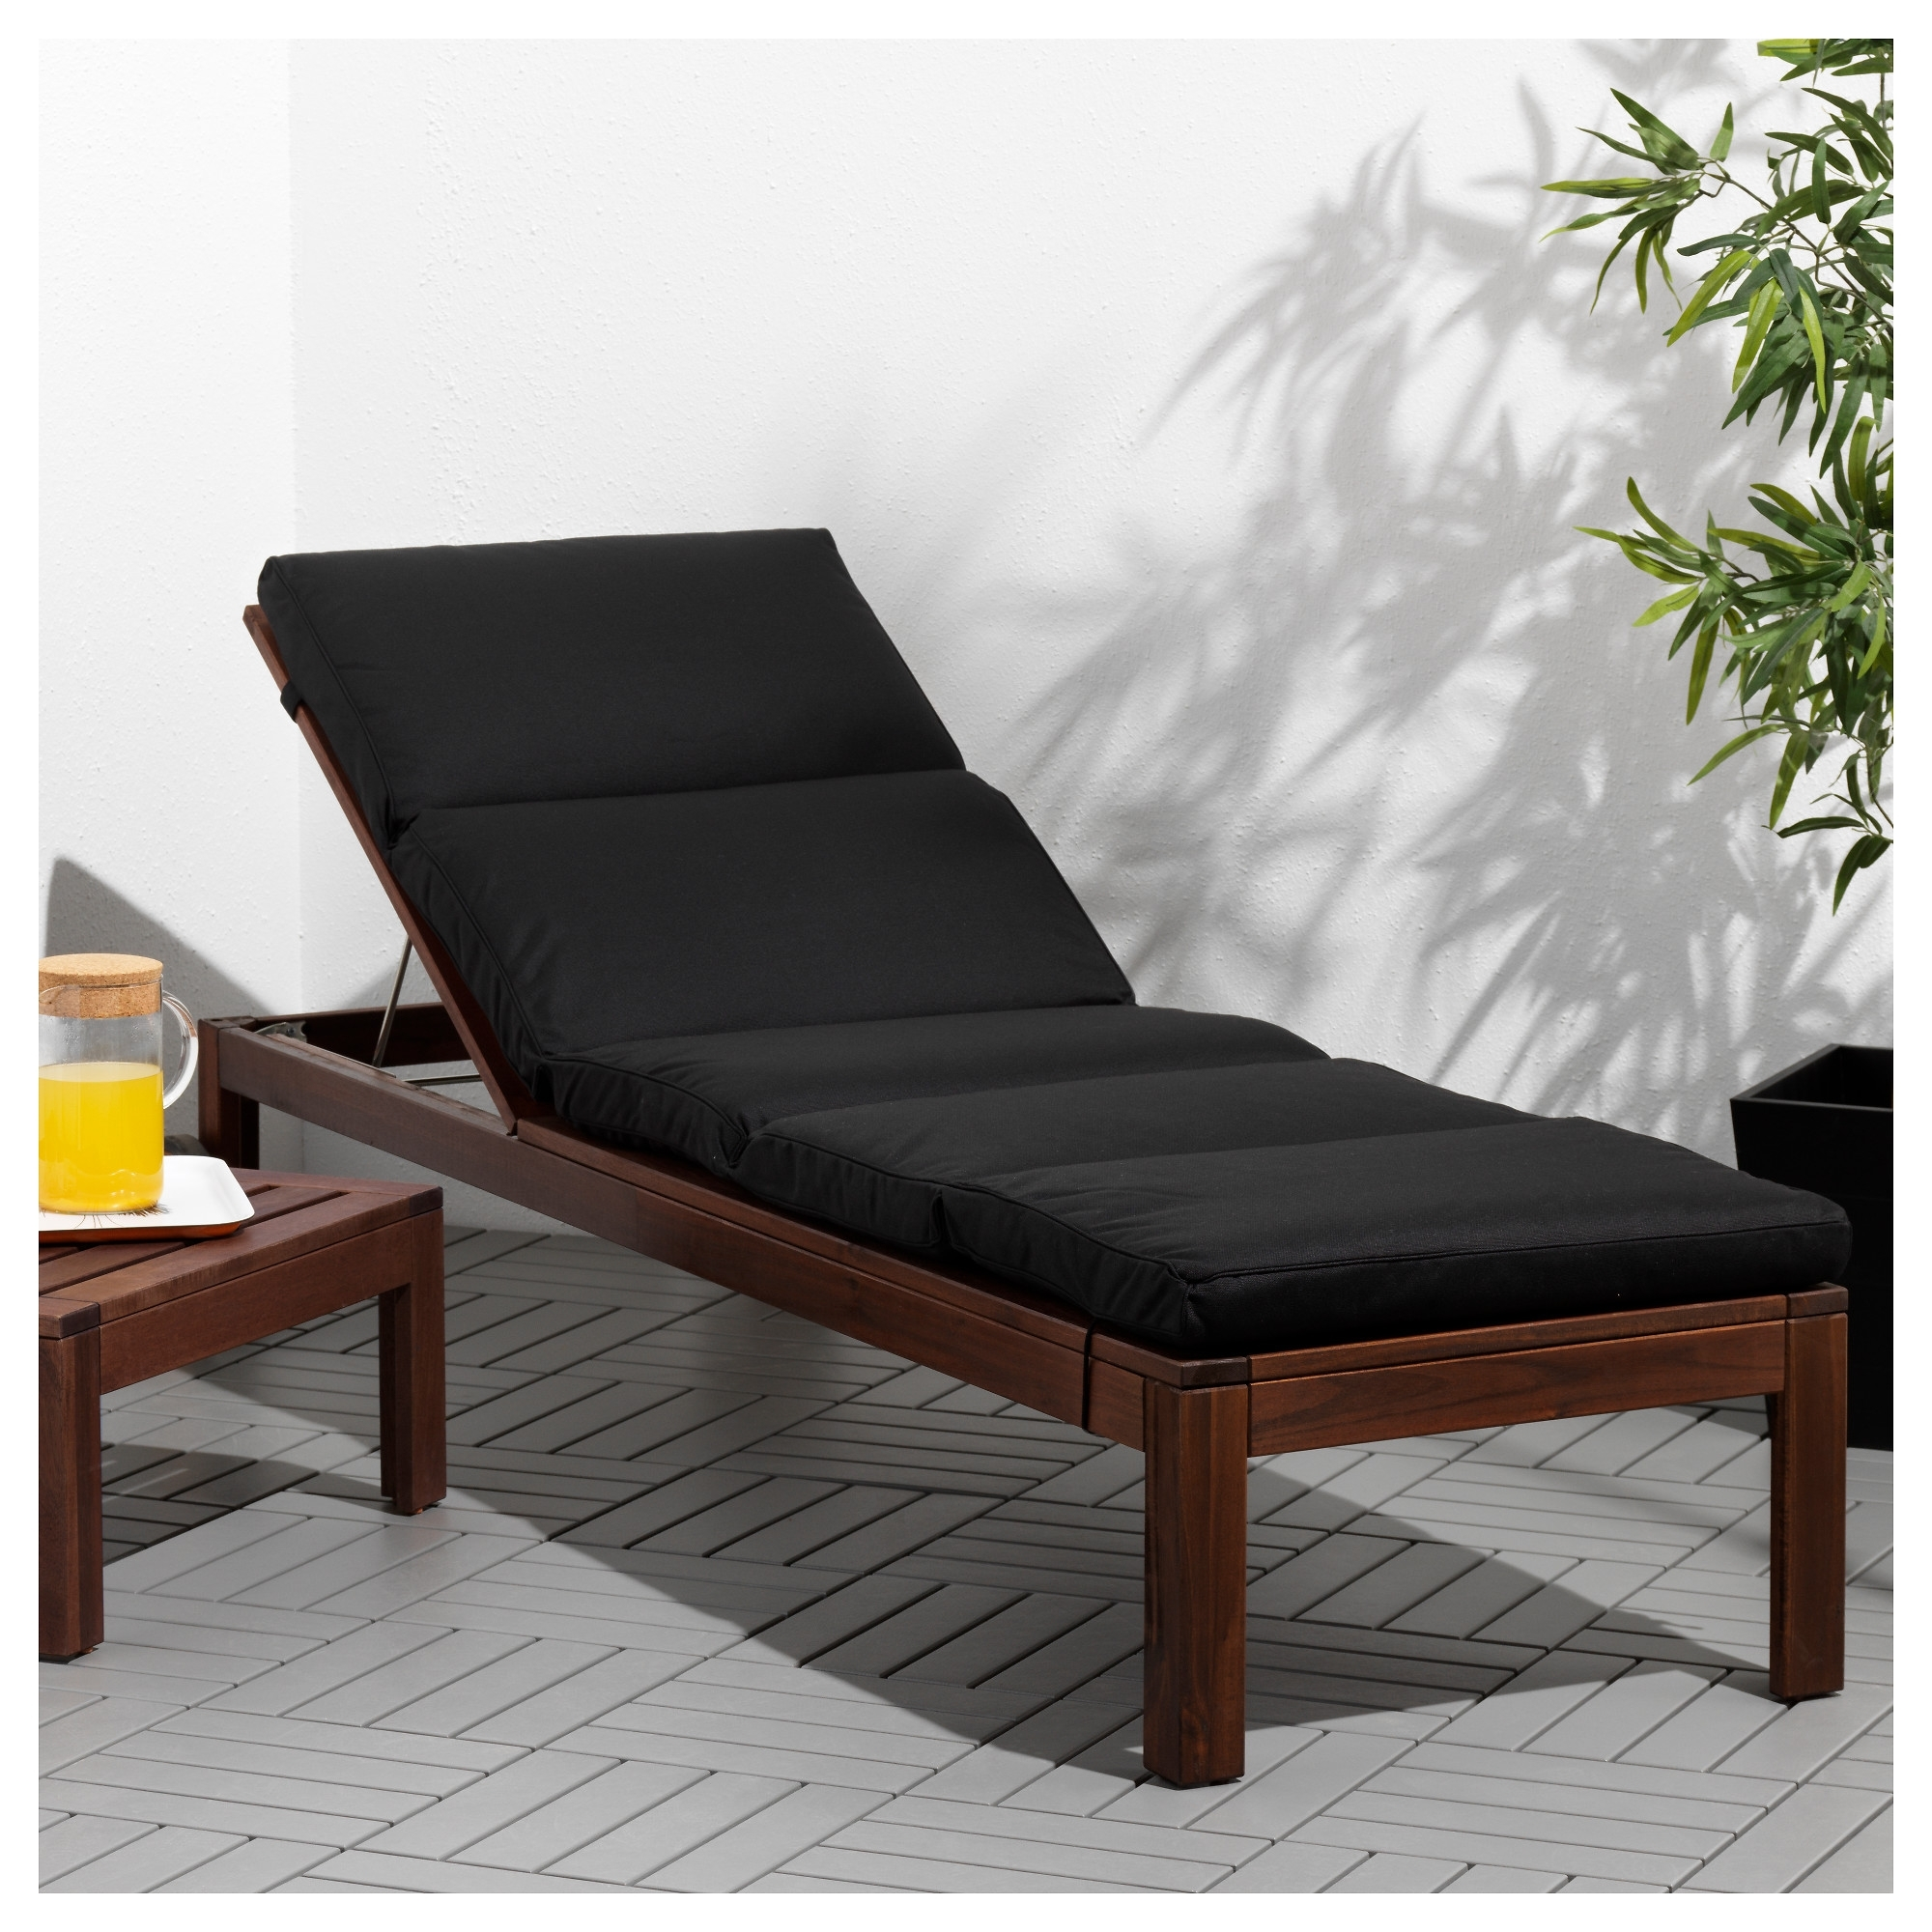 Ikea Lounge Chair 15 Best Collection Of Outdoor Ikea Chaise Lounge Chairs